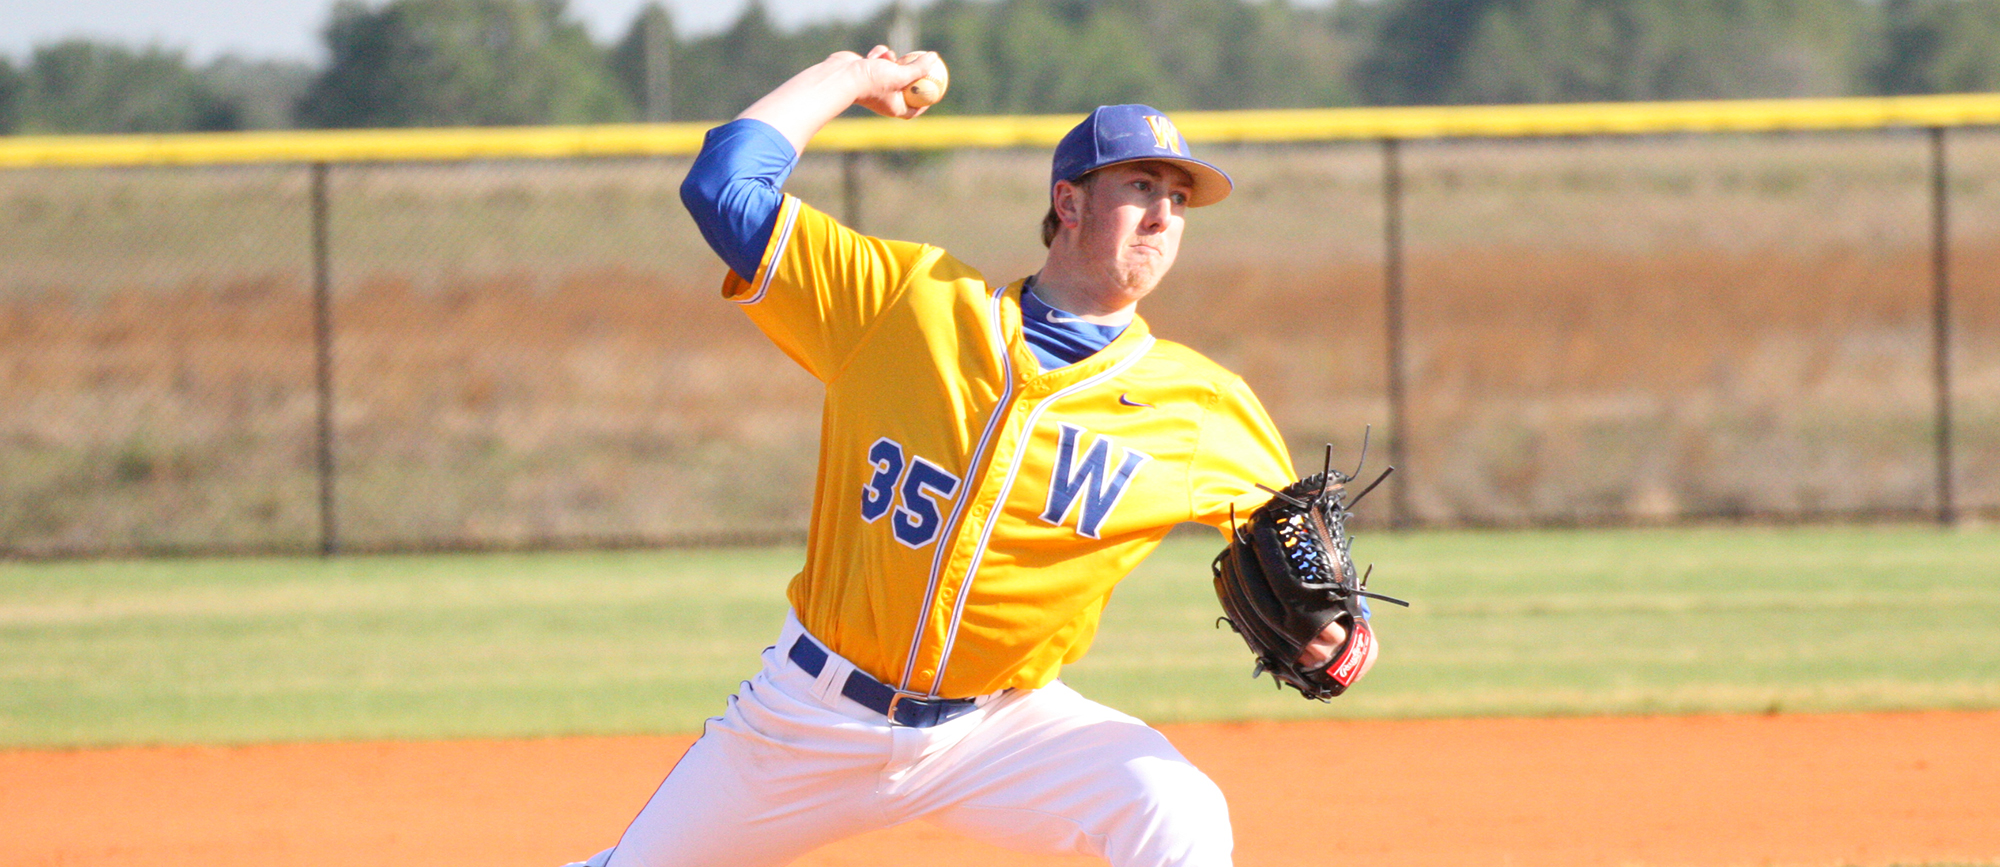 Kawiecki Strikes Out Eight, But Golden Bears Fall to UMass Boston, 5-1